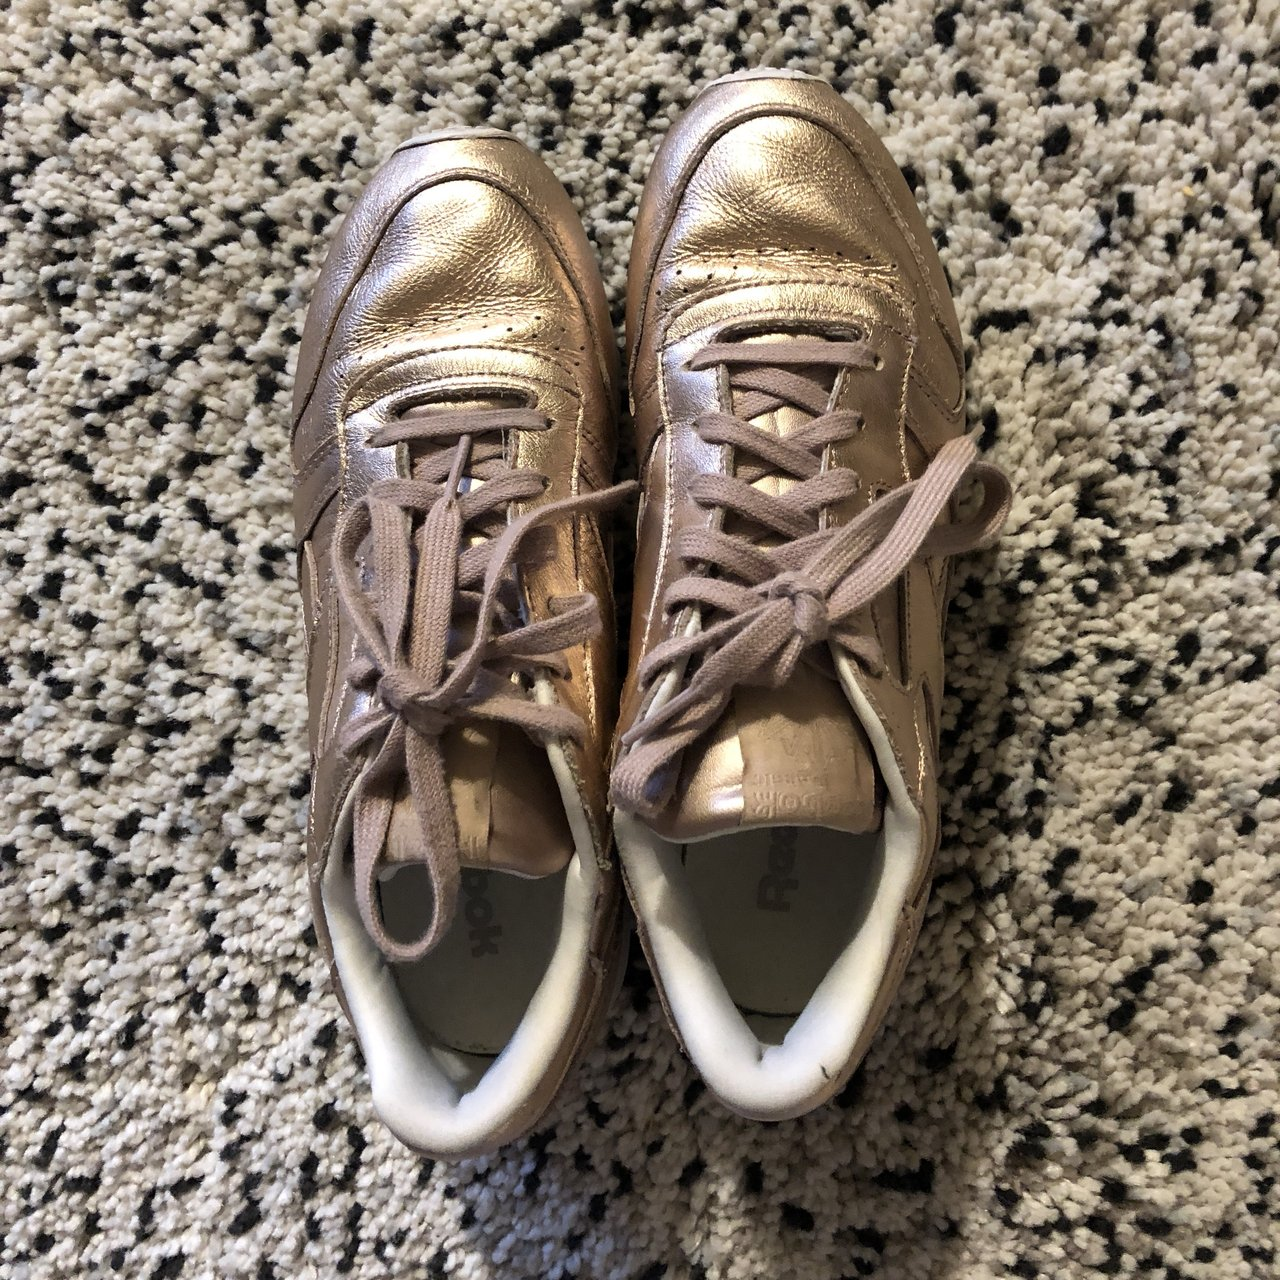 6c43bf96905bce NEVER WORN Reebok Club C Sneakers in Blush and Rose Gold. 6 - Depop